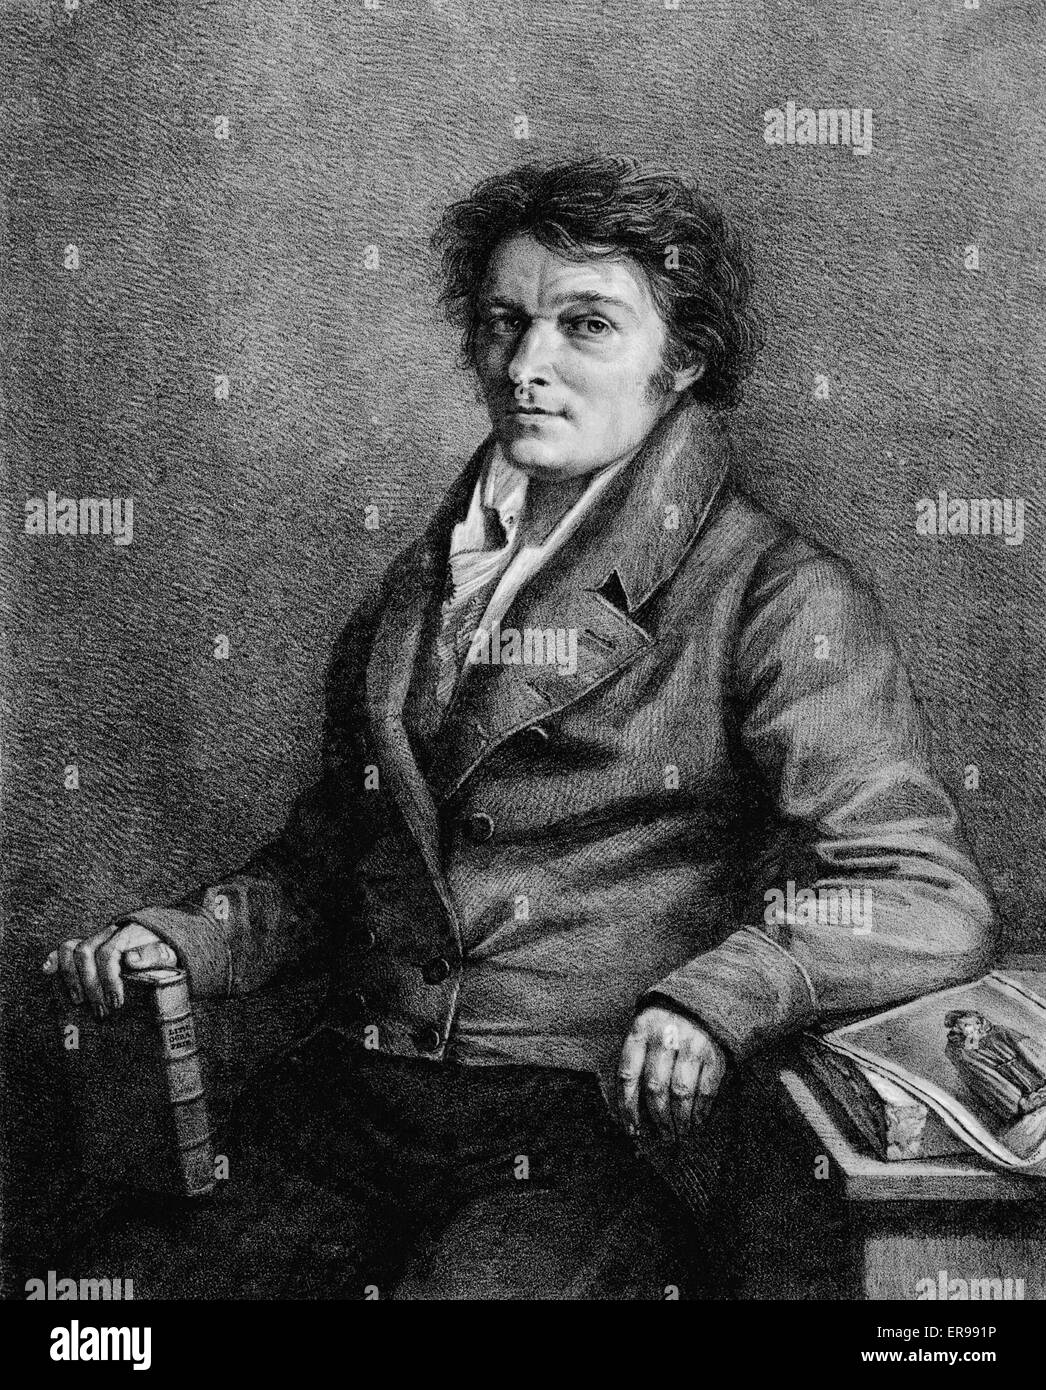 Alois Senefelder, inventor of lithography printing, portrait, seated, facing left. 1818 - Stock Image